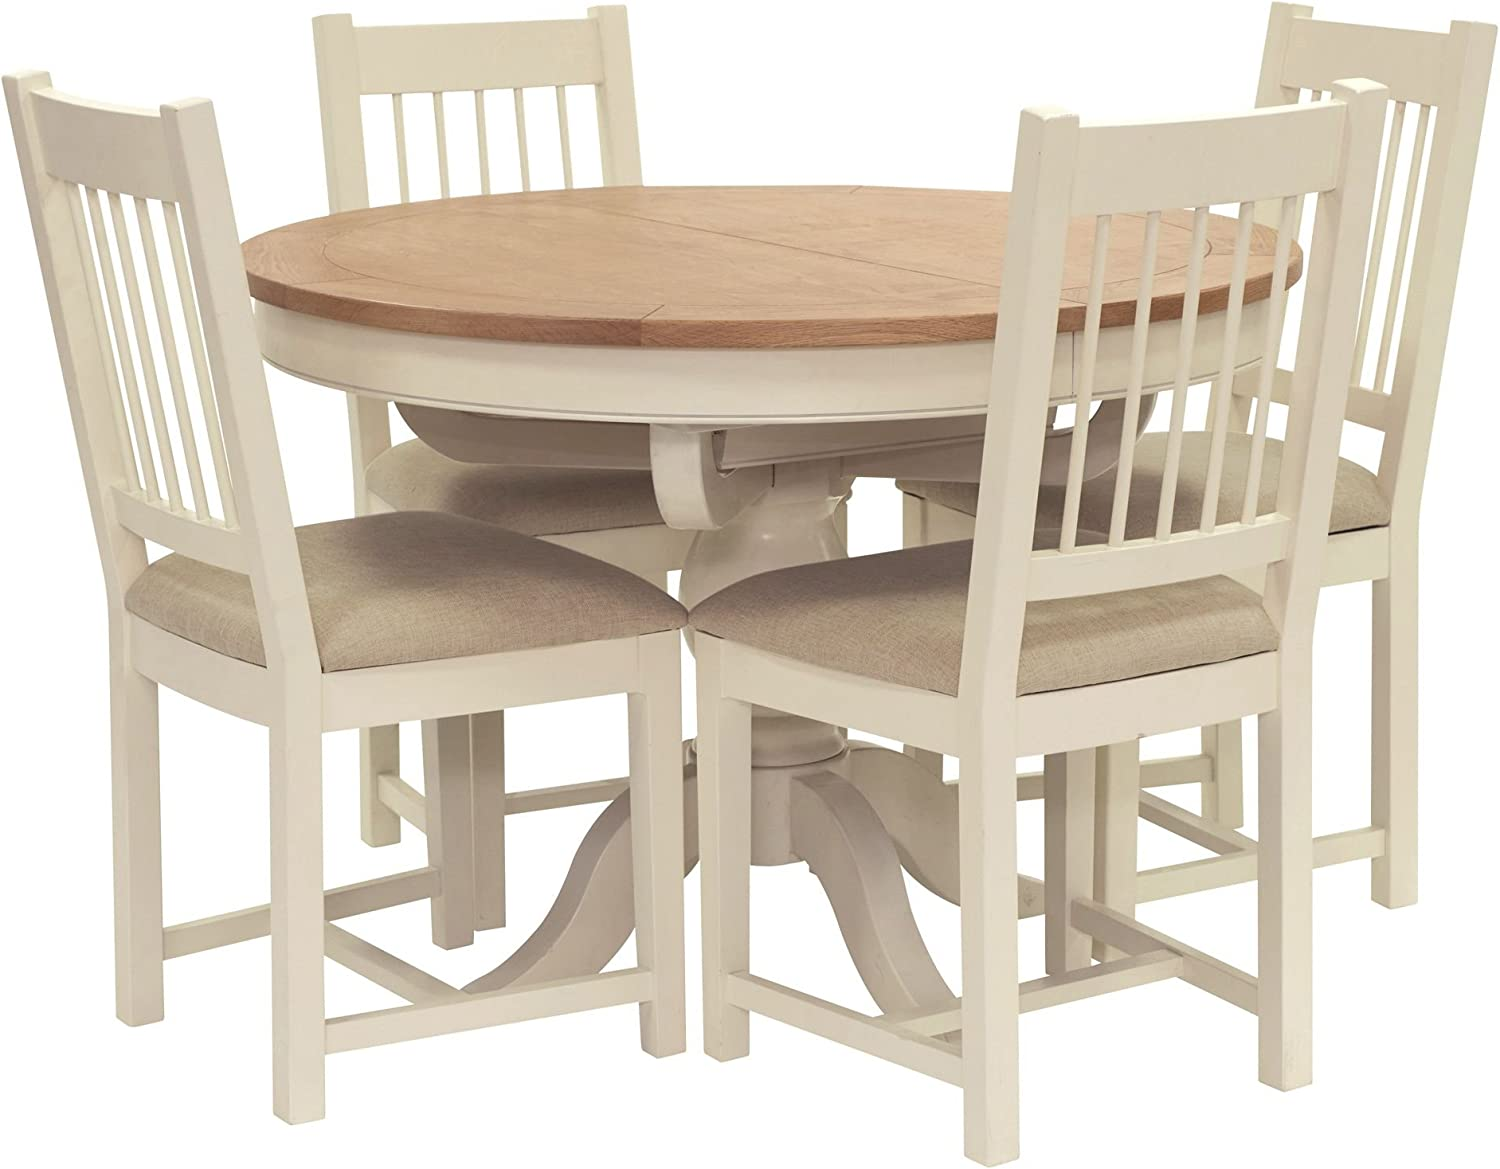 Top Newquay Oak Round Extending Dining Table And 4 Spindle Back Dining Chairs With Cream Seat Willis Gambier Amazon De Kuche Haushalt